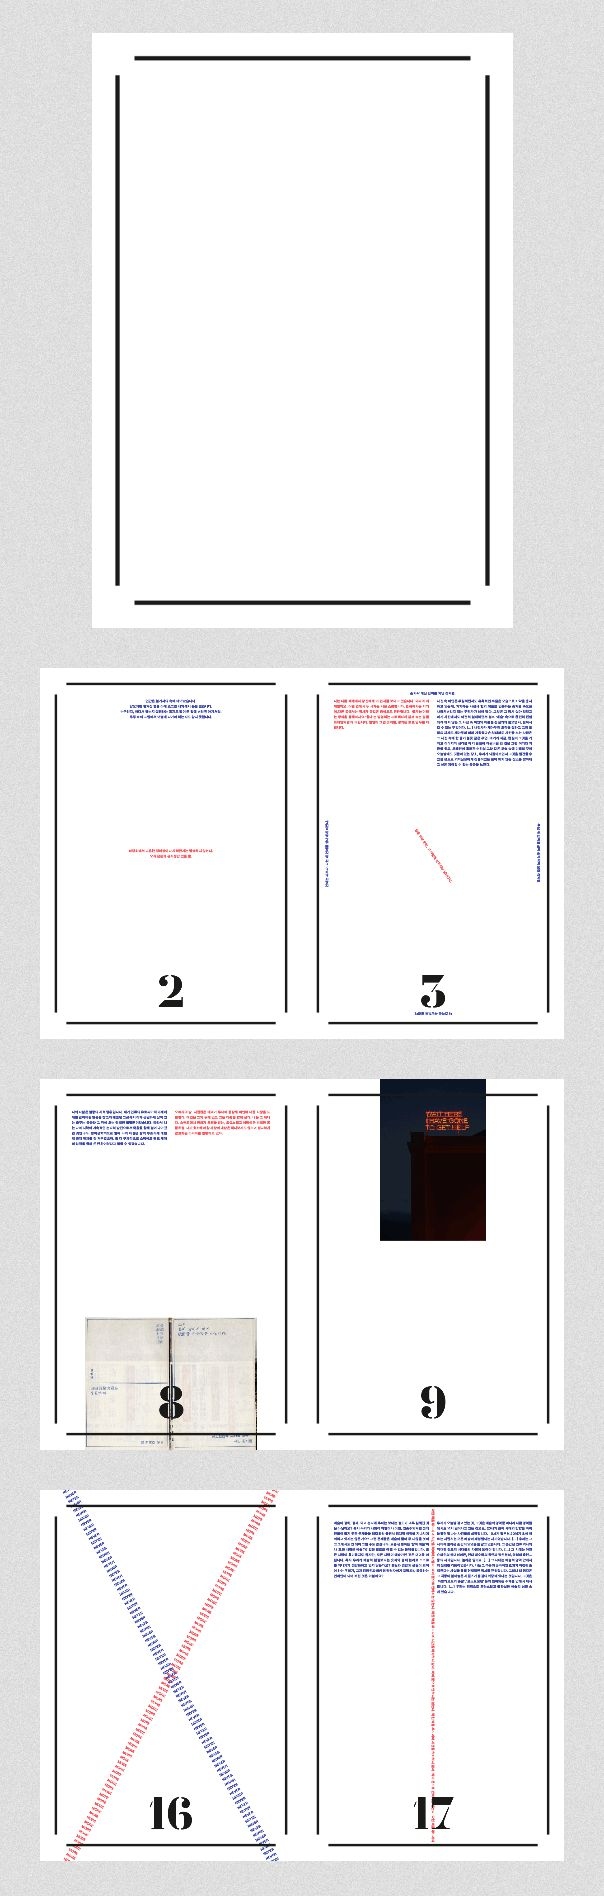 """Ob.scene, no. 6 (Suwon: Specter Press, 2016). Published in conjunction with the exhibition Void (National Museum of Modern and Contemporary Art, Seoul). Offset printing, saddle-stitching, page size 297 x 420 mm, 24 pp. Co-authored with Kim Seong Hee and Seo Hyun-Suk // Ob.scene is a performing arts journal focused on the """"things out of the stage."""" Ob.scene no. 6 is a printed response to the previous issue, The text is a collage of quotes from other books, films, or songs -- responding to the…"""